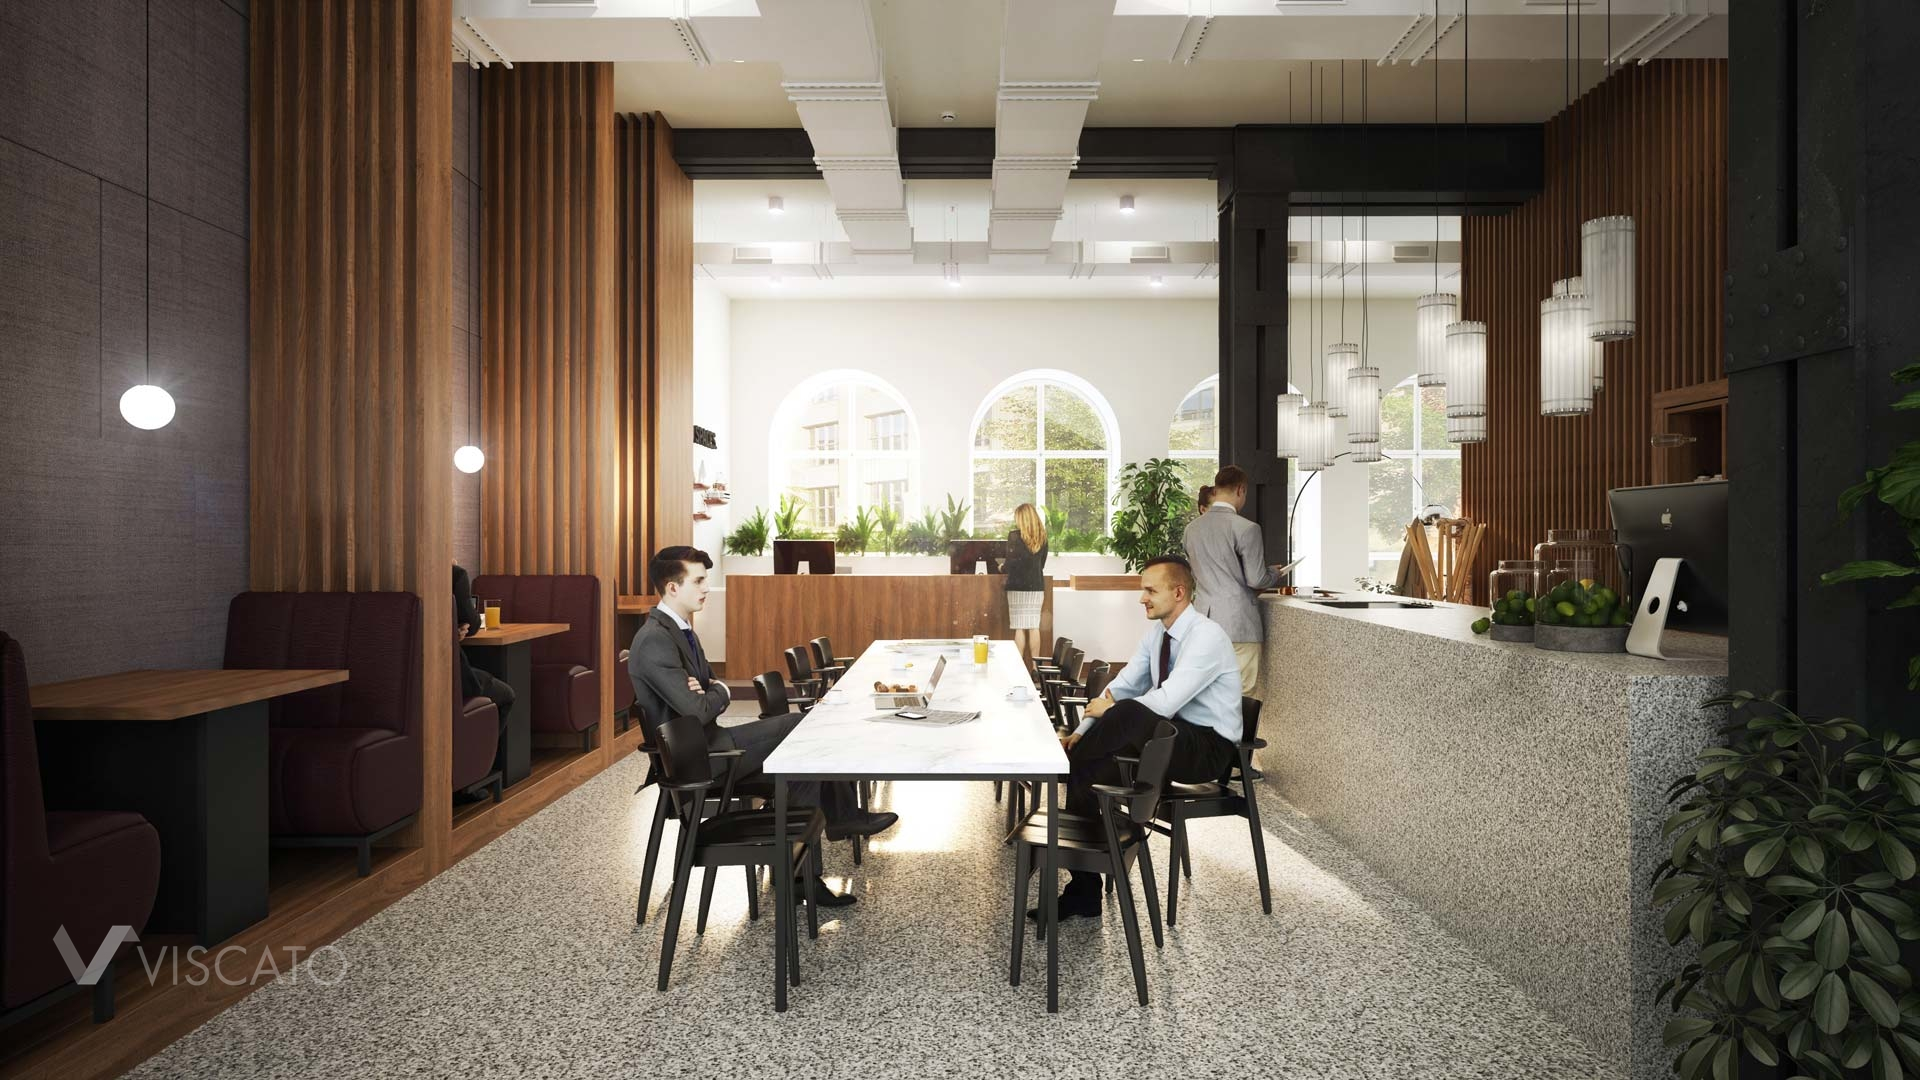 Dining area in the office, 3D rendering